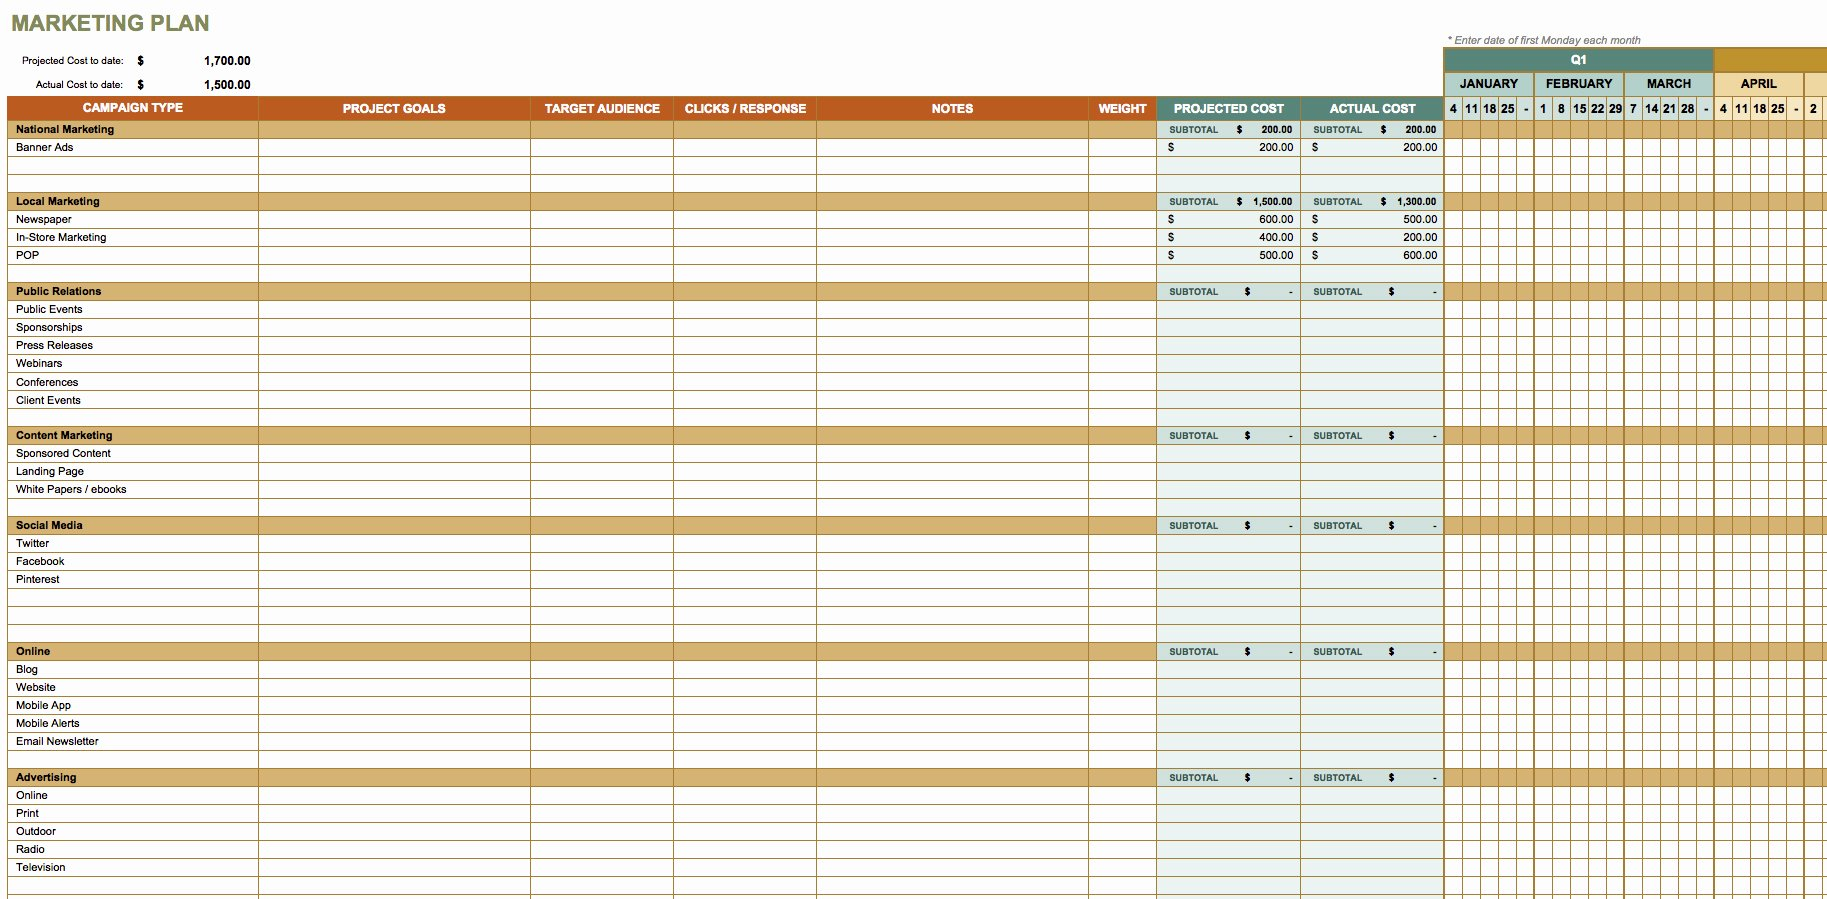 Quarterly Action Plan Template Inspirational Free Marketing Plan Templates for Excel Smartsheet